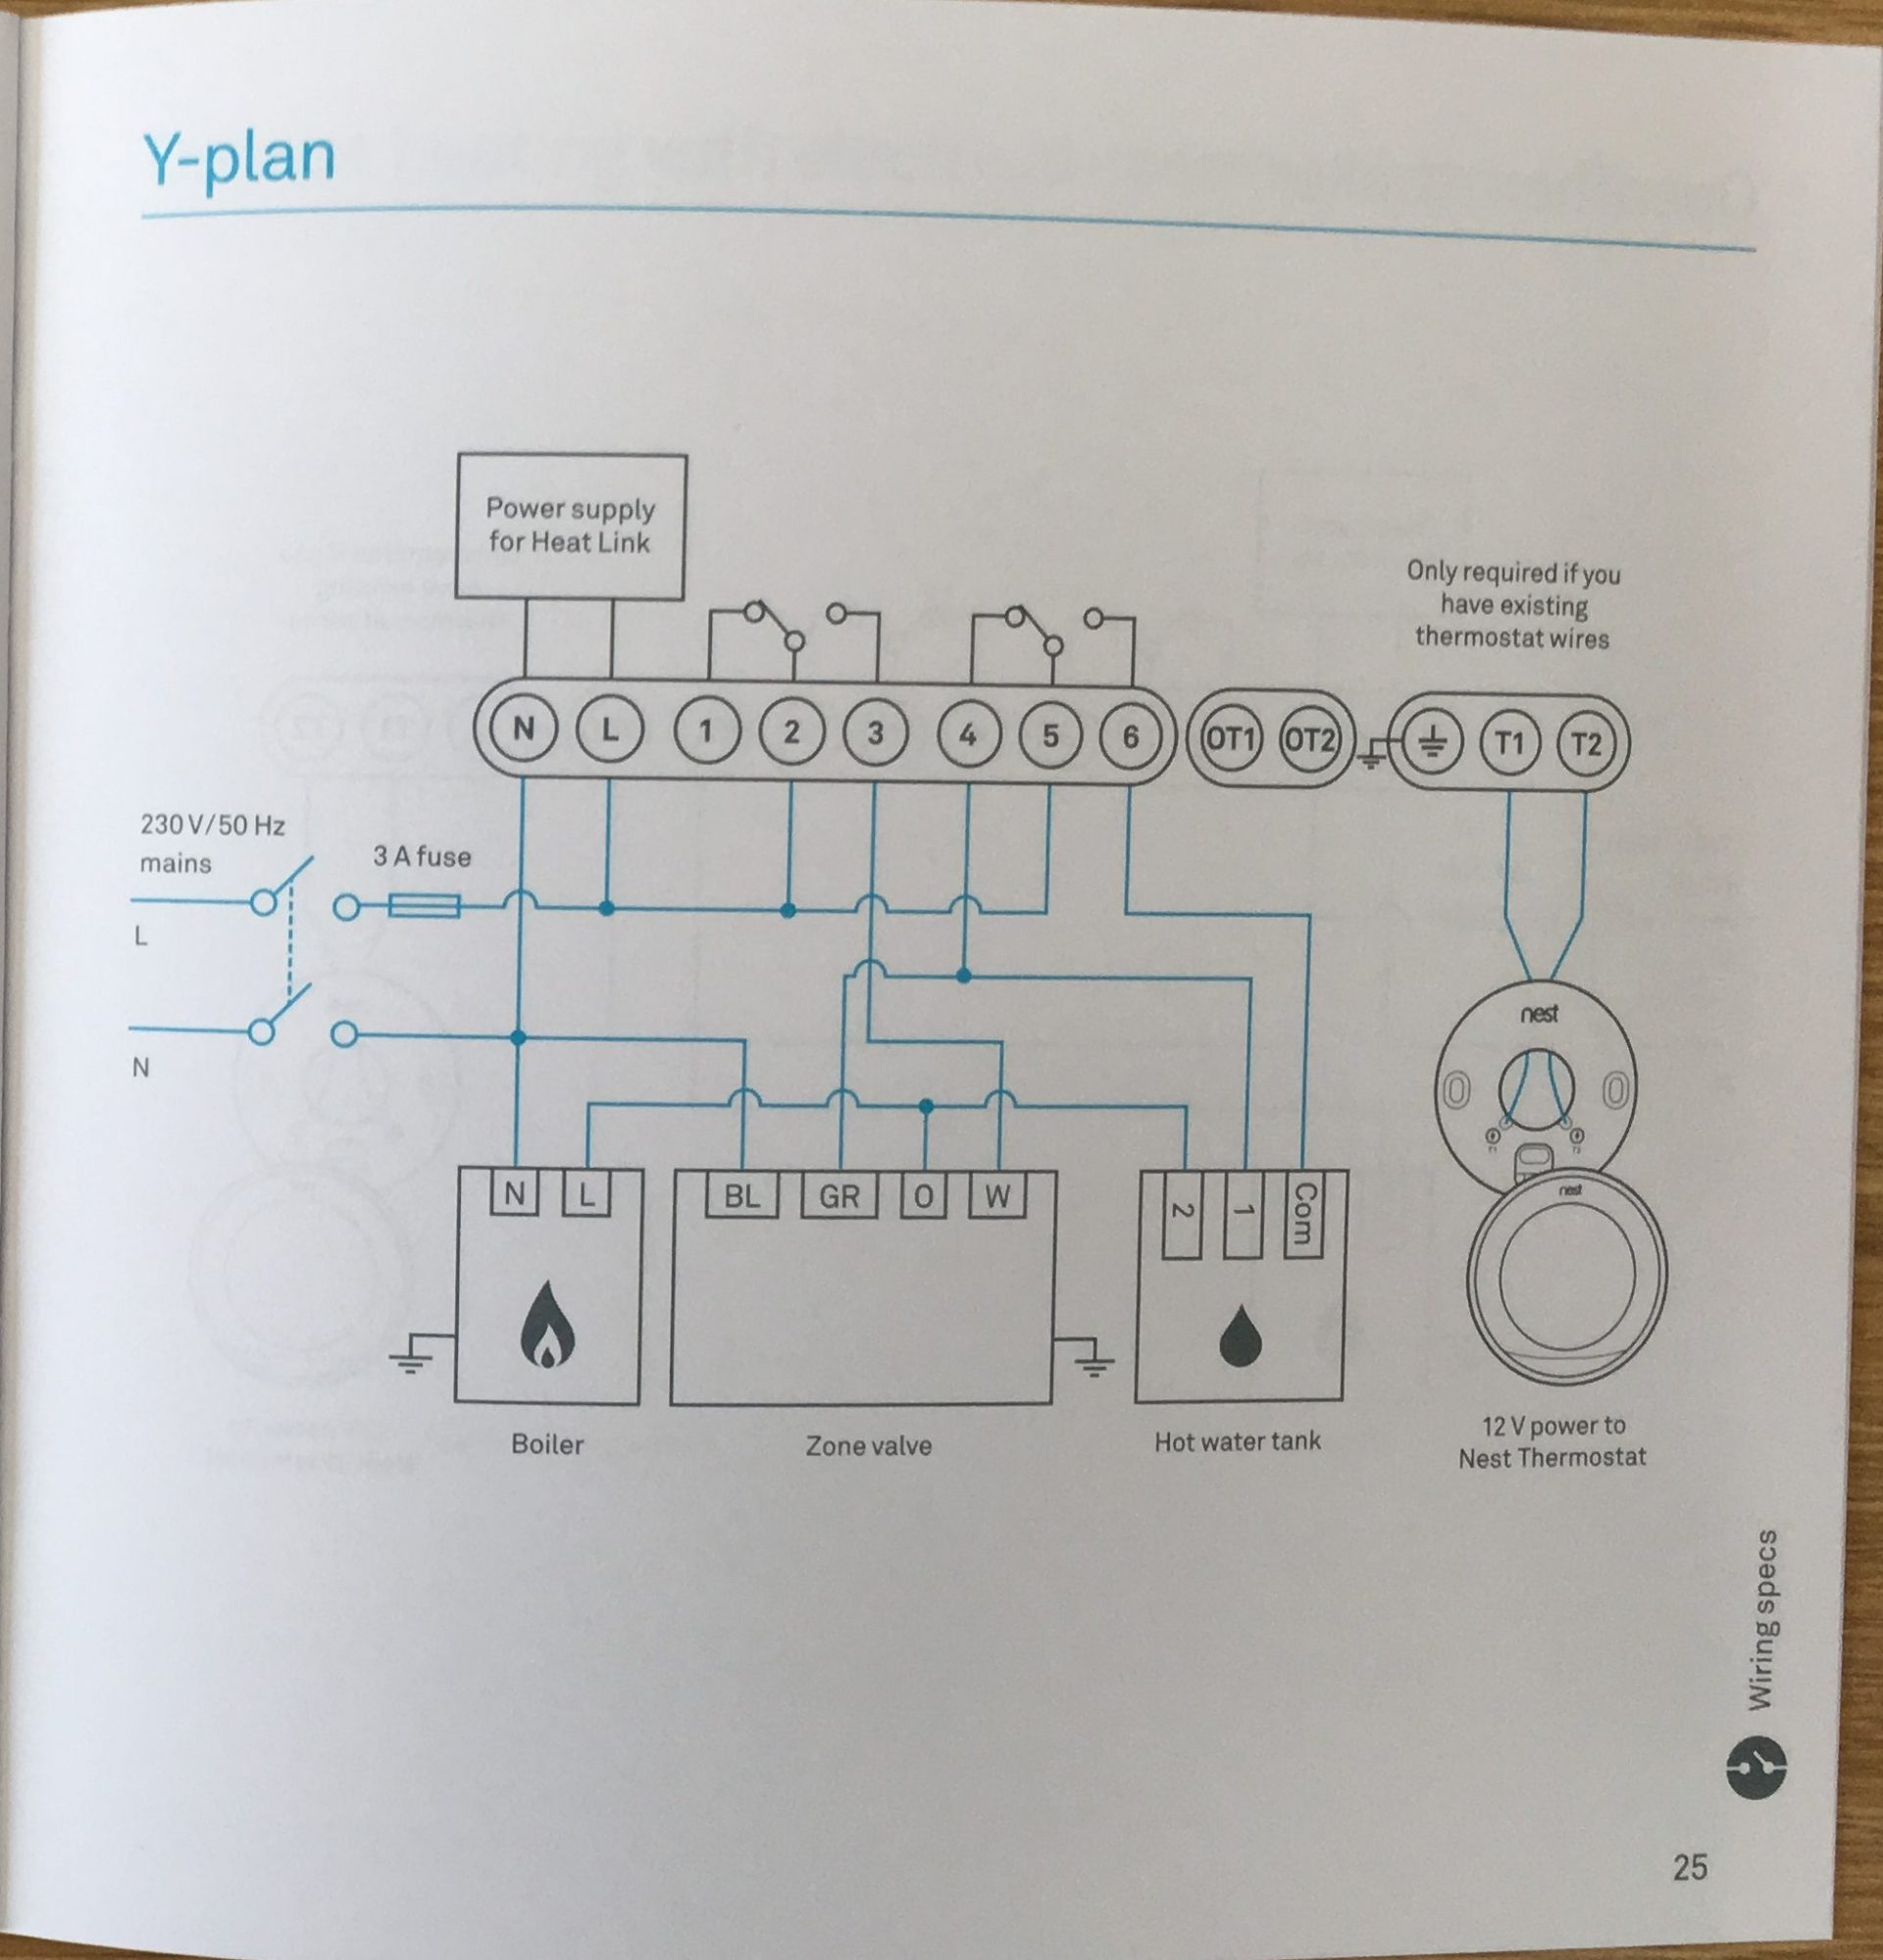 How To Install The Nest Learning Thermostat (3Rd Gen) In A Y-Plan - Nest Multiple Wiring Diagram